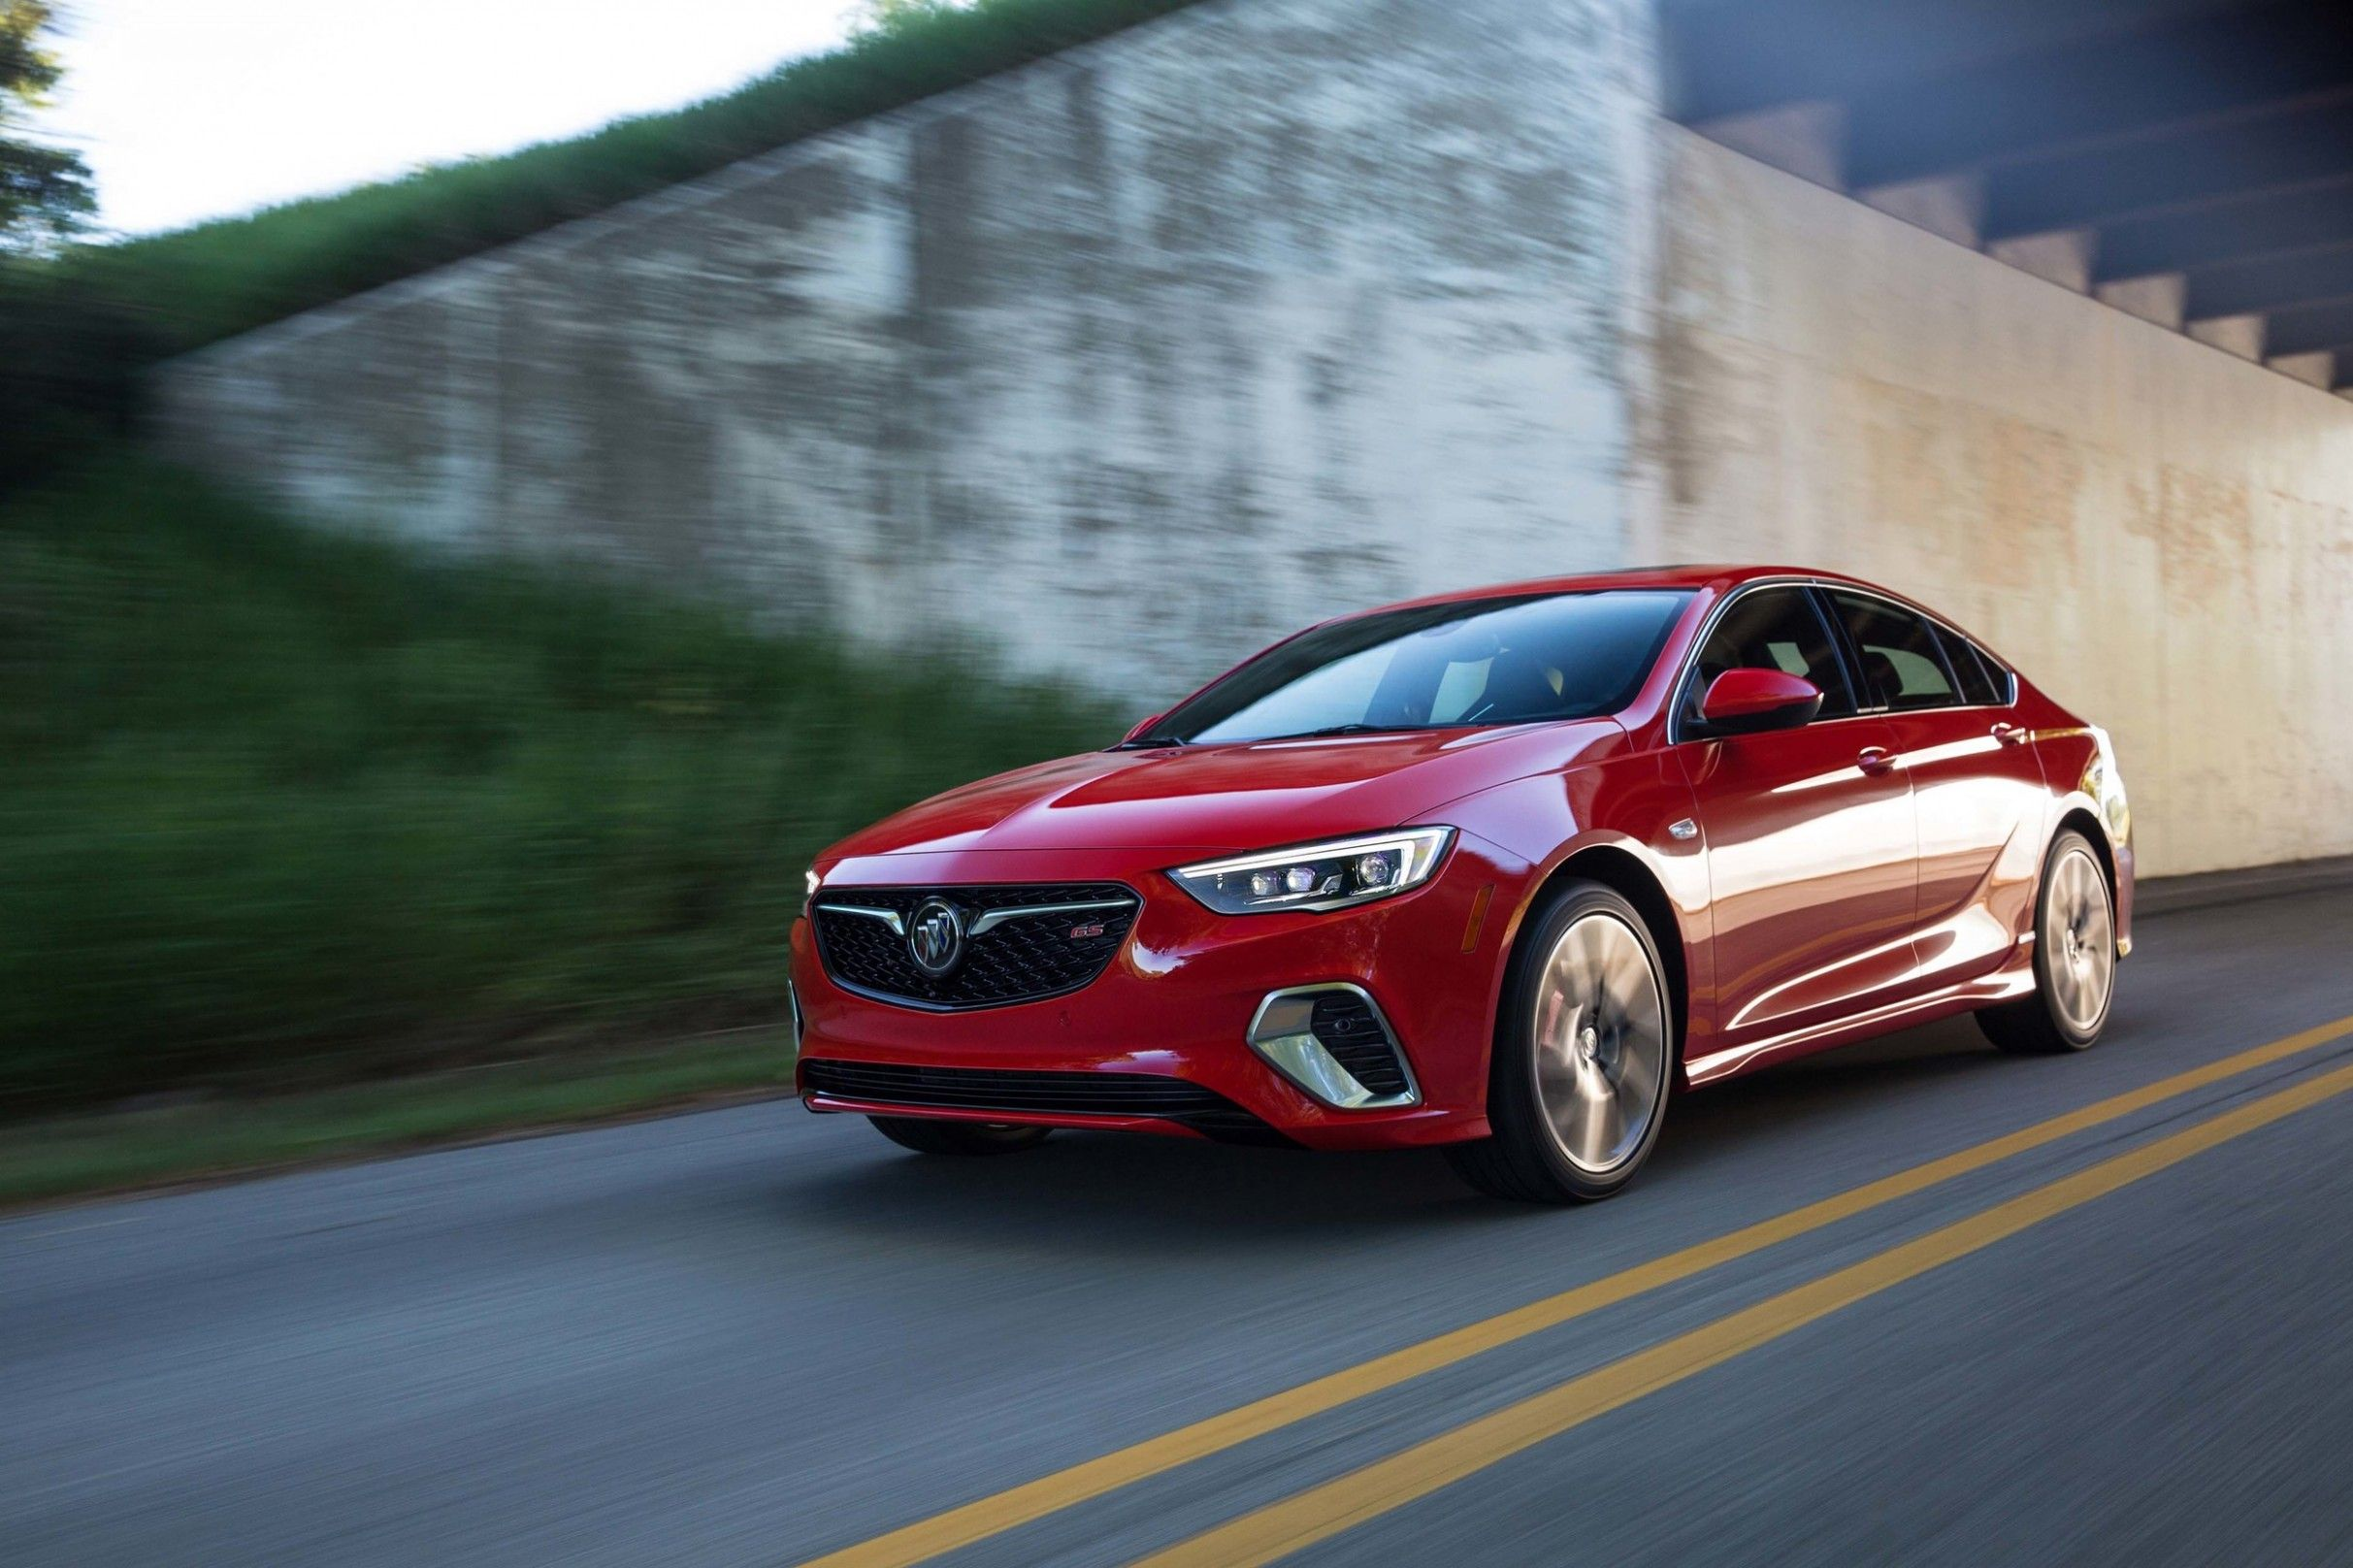 2021 buick regal gs coupe images  buick regal buick